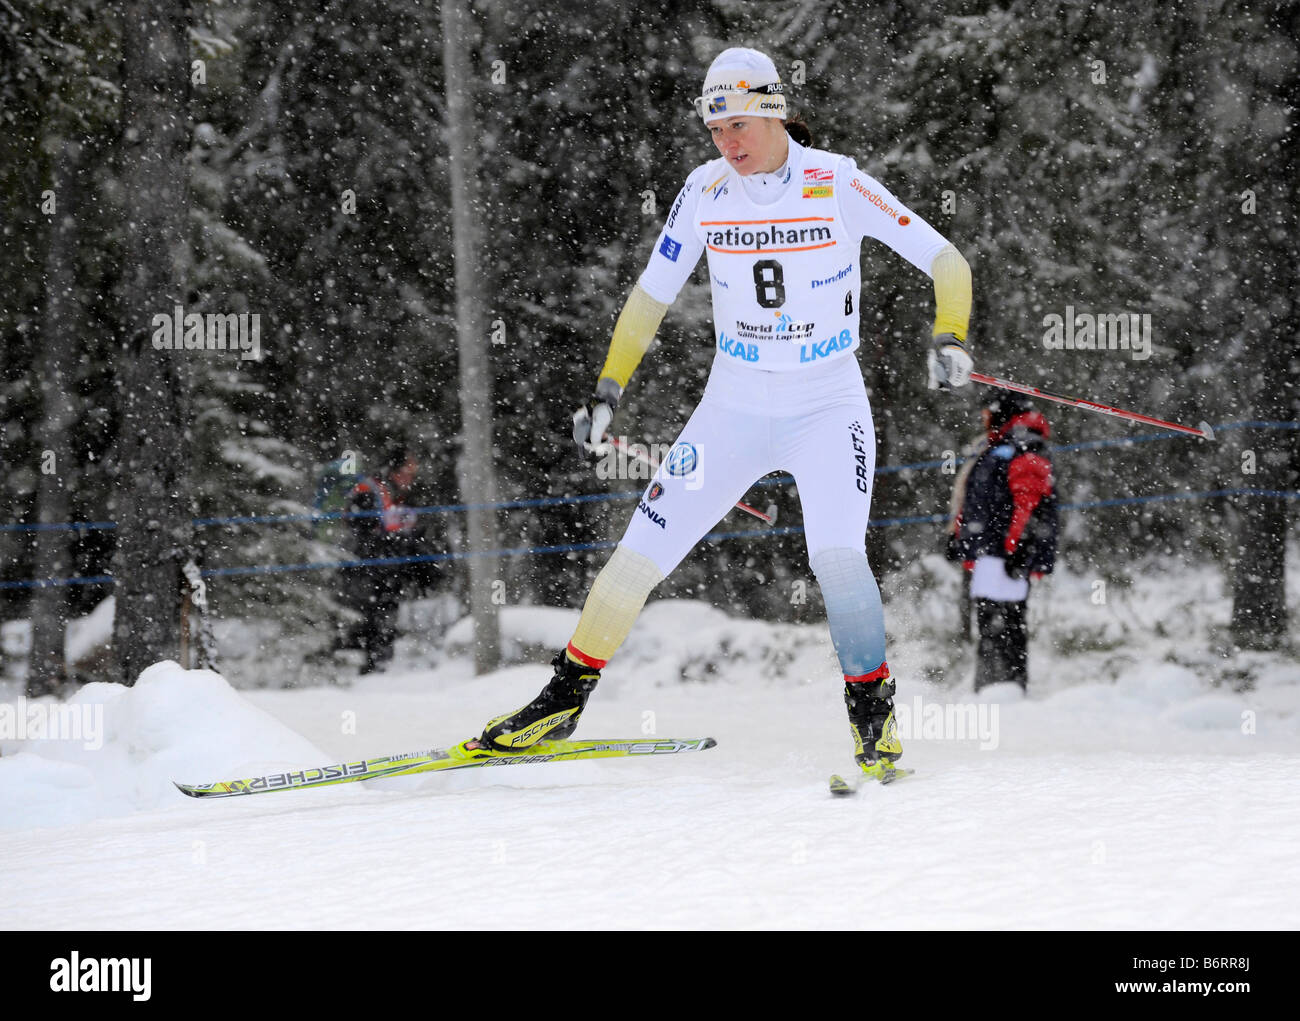 Britta Norgren, Sweden, The world cup competitions in Gällivare, Sweden 2008 11 22 - Stock Image